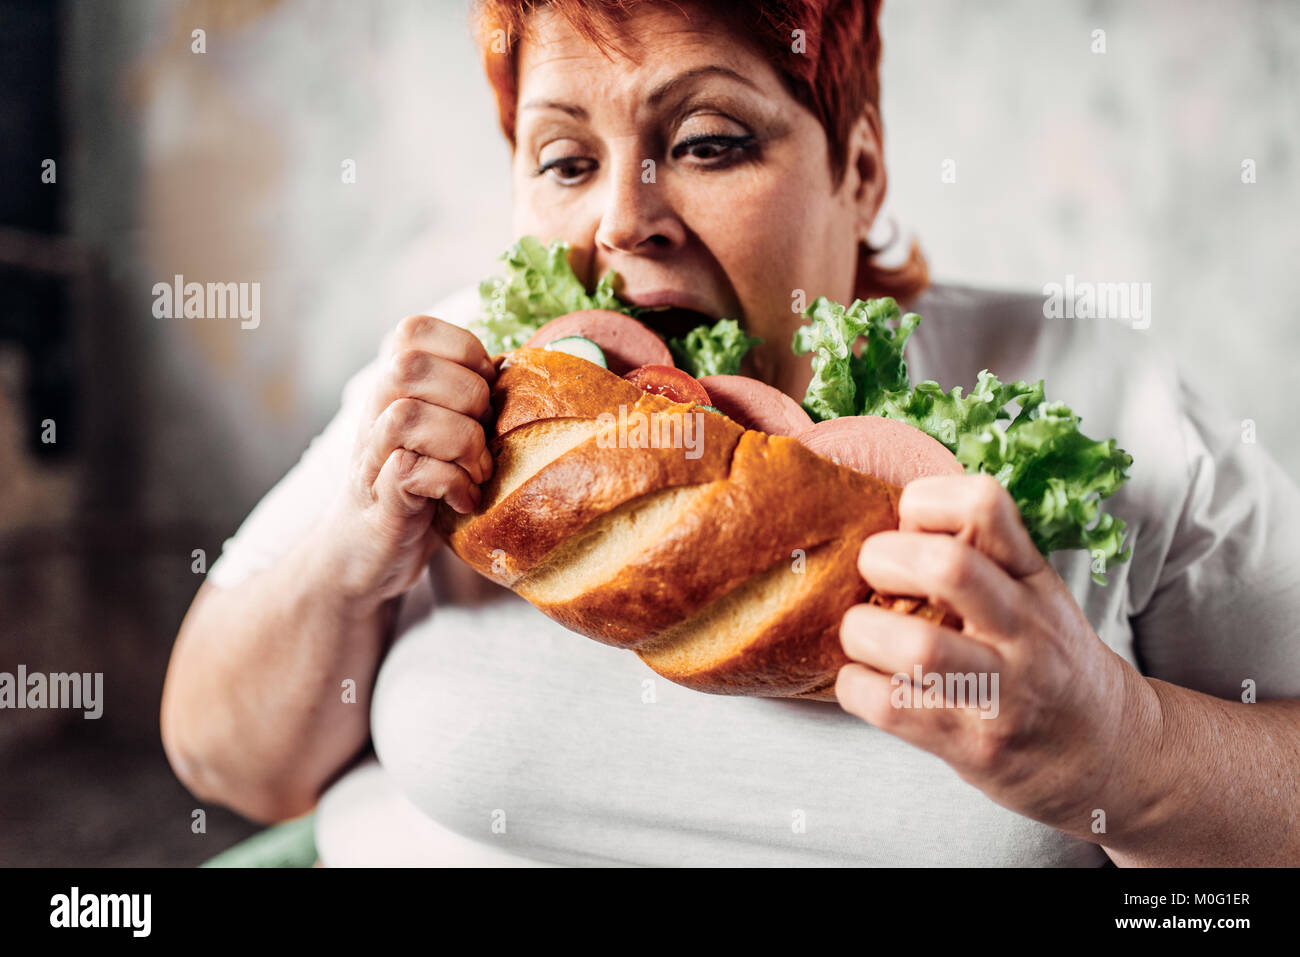 Fat woman eats sandwich, overweight and bulimic. Unhealthy lifestyle, obesity - Stock Image